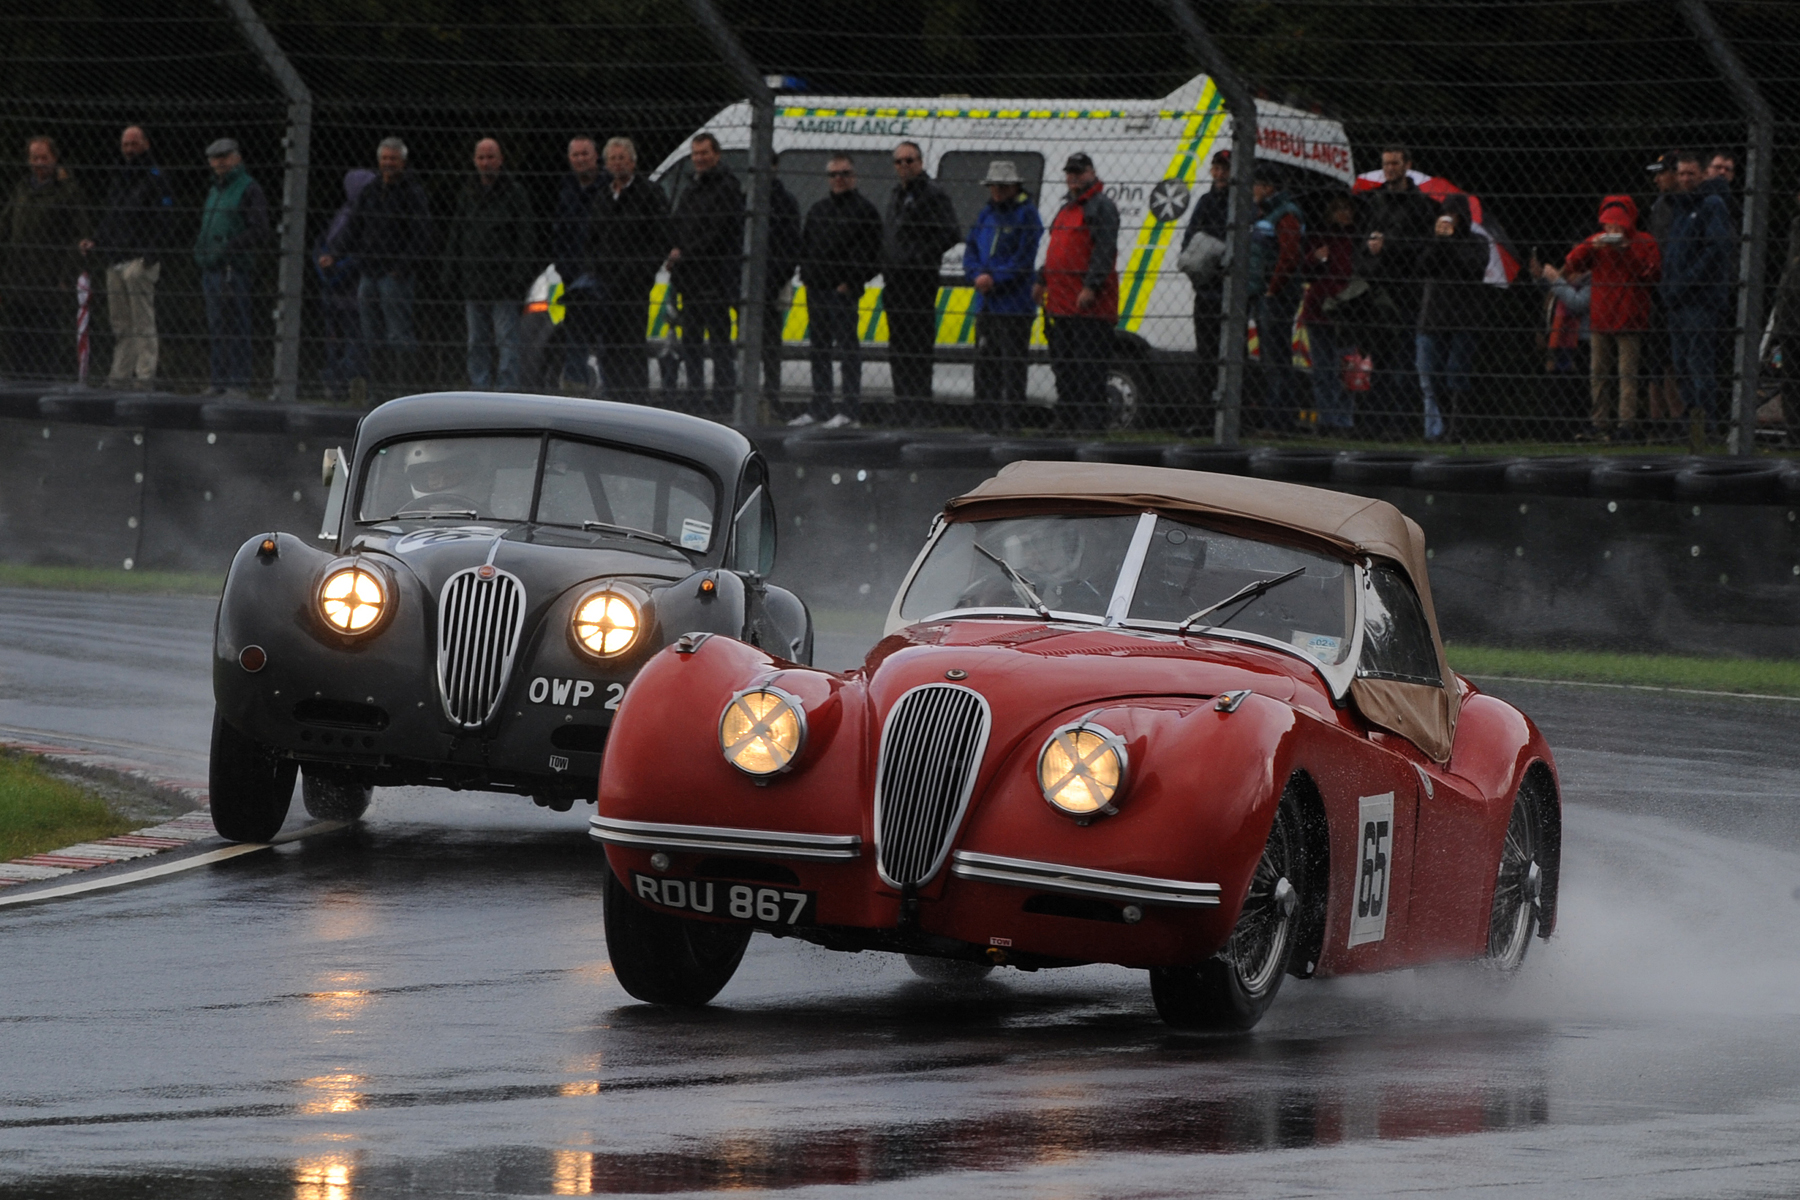 Geoff Ottley leads Kevin Zwolinski in their all XK120 early battle for 2nd place                        Photo - Jeff Bloxham